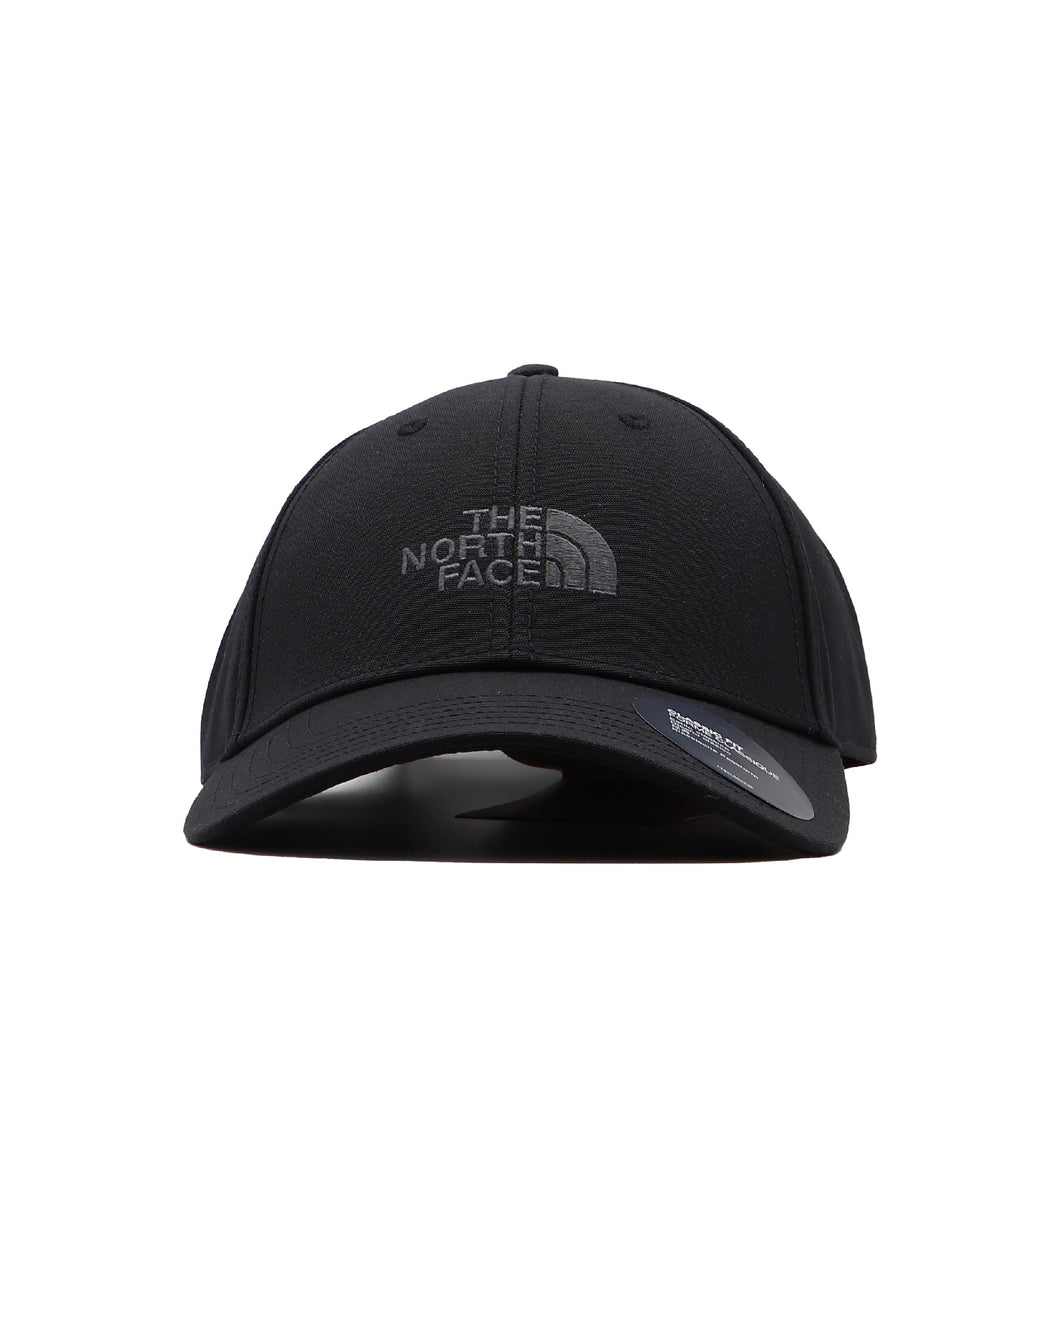 The North Face CappelloRecycled 66 Classic Black